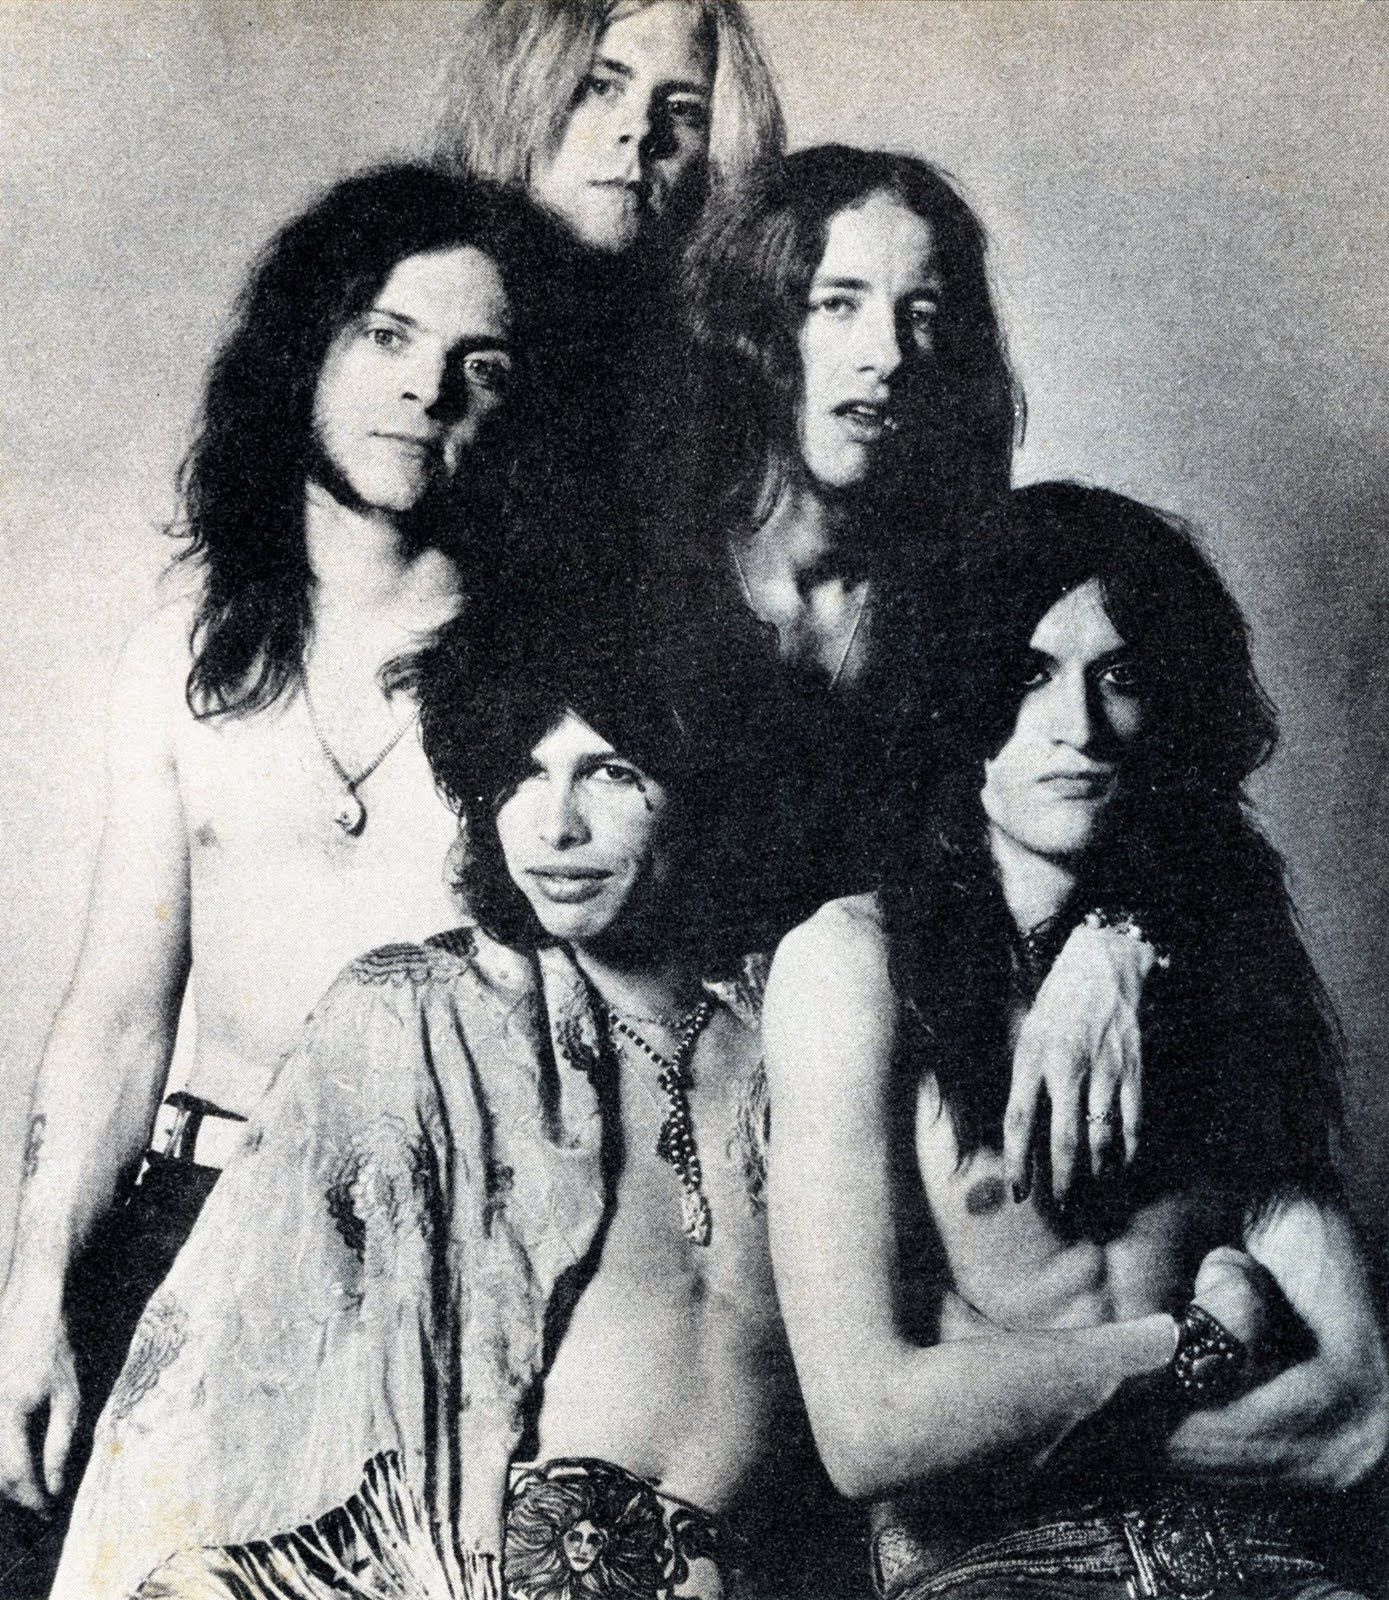 Joe Perry - January 1, 1970 - First official Aerosmith publicity shot